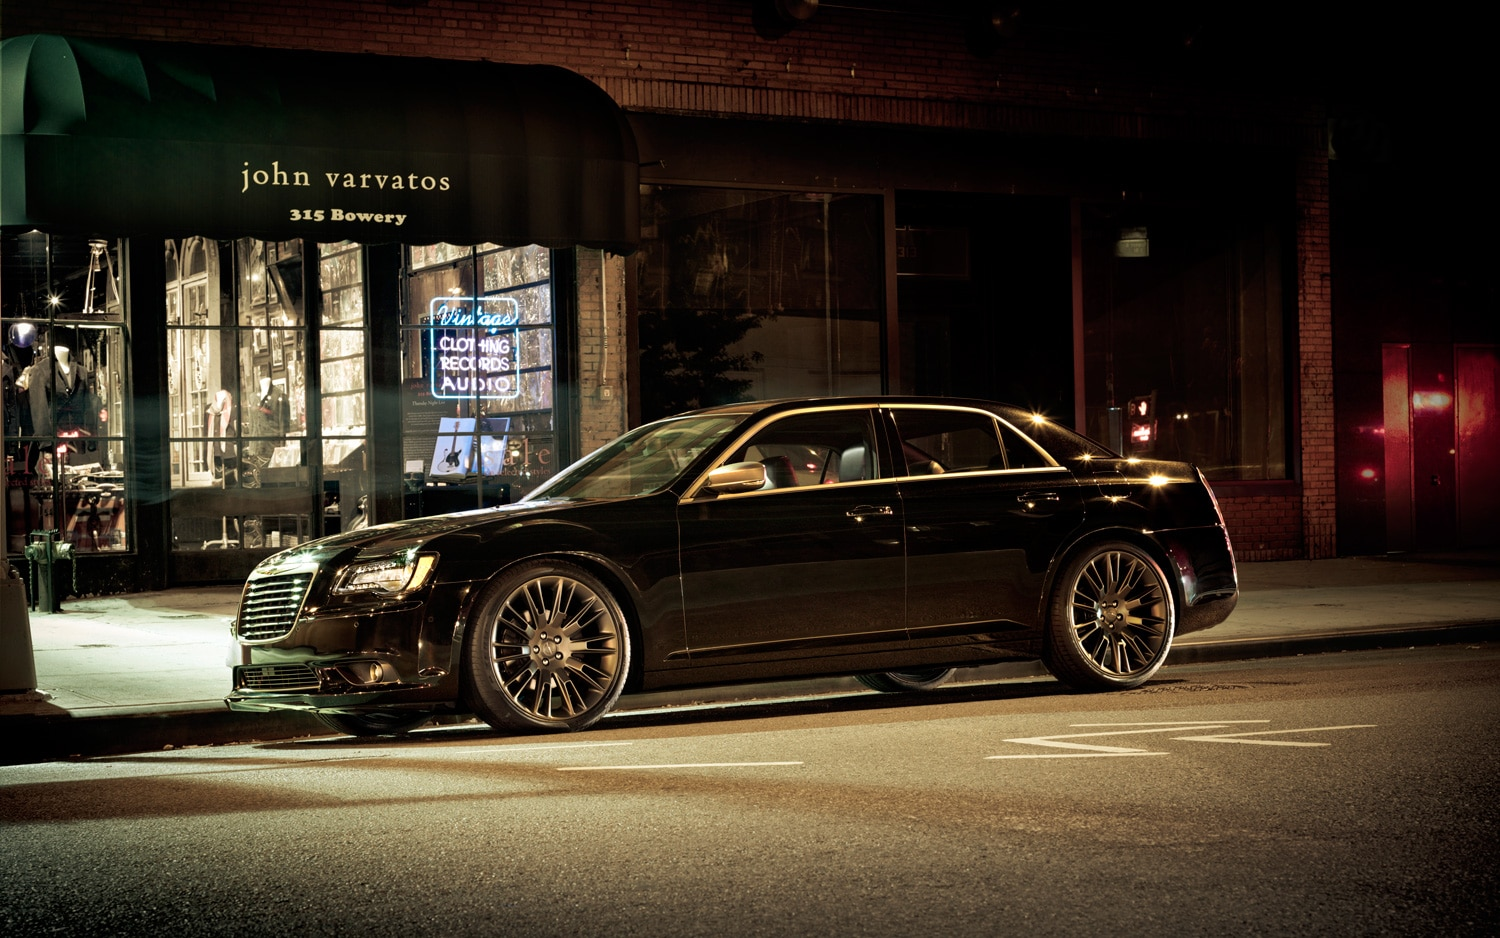 Feature Flick John Varvatos Unboxes His Chrysler 300 In